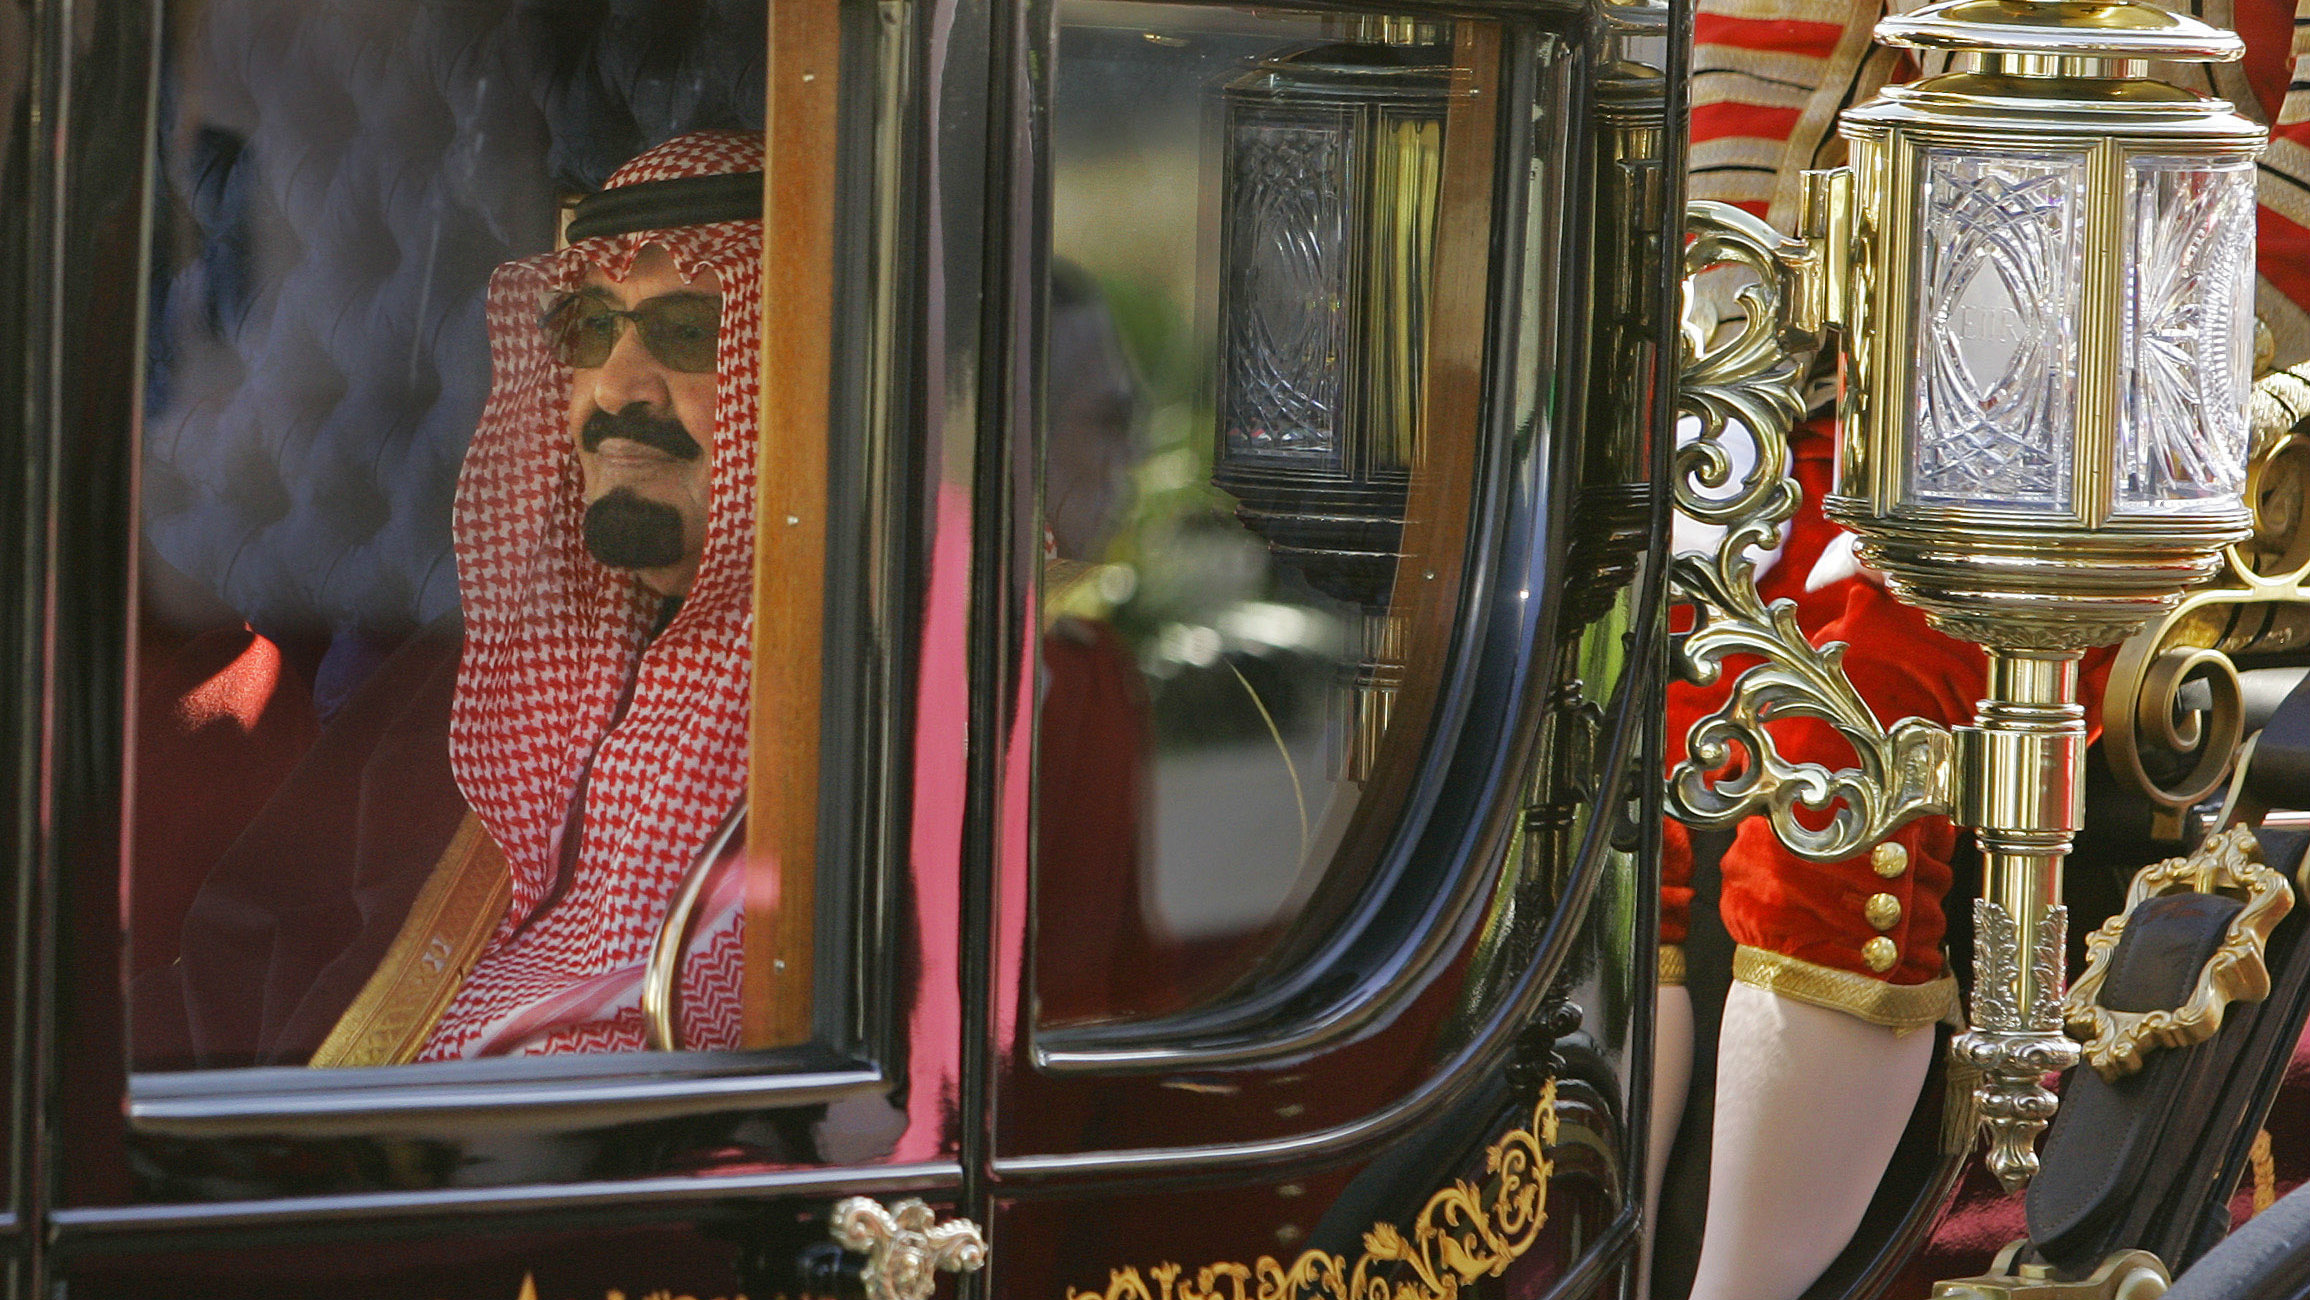 Saudi Arabia's King Abdullah rides in a carriage as he leaves Horse Guards, London, after a ceremonial welcome October 30, 2007.